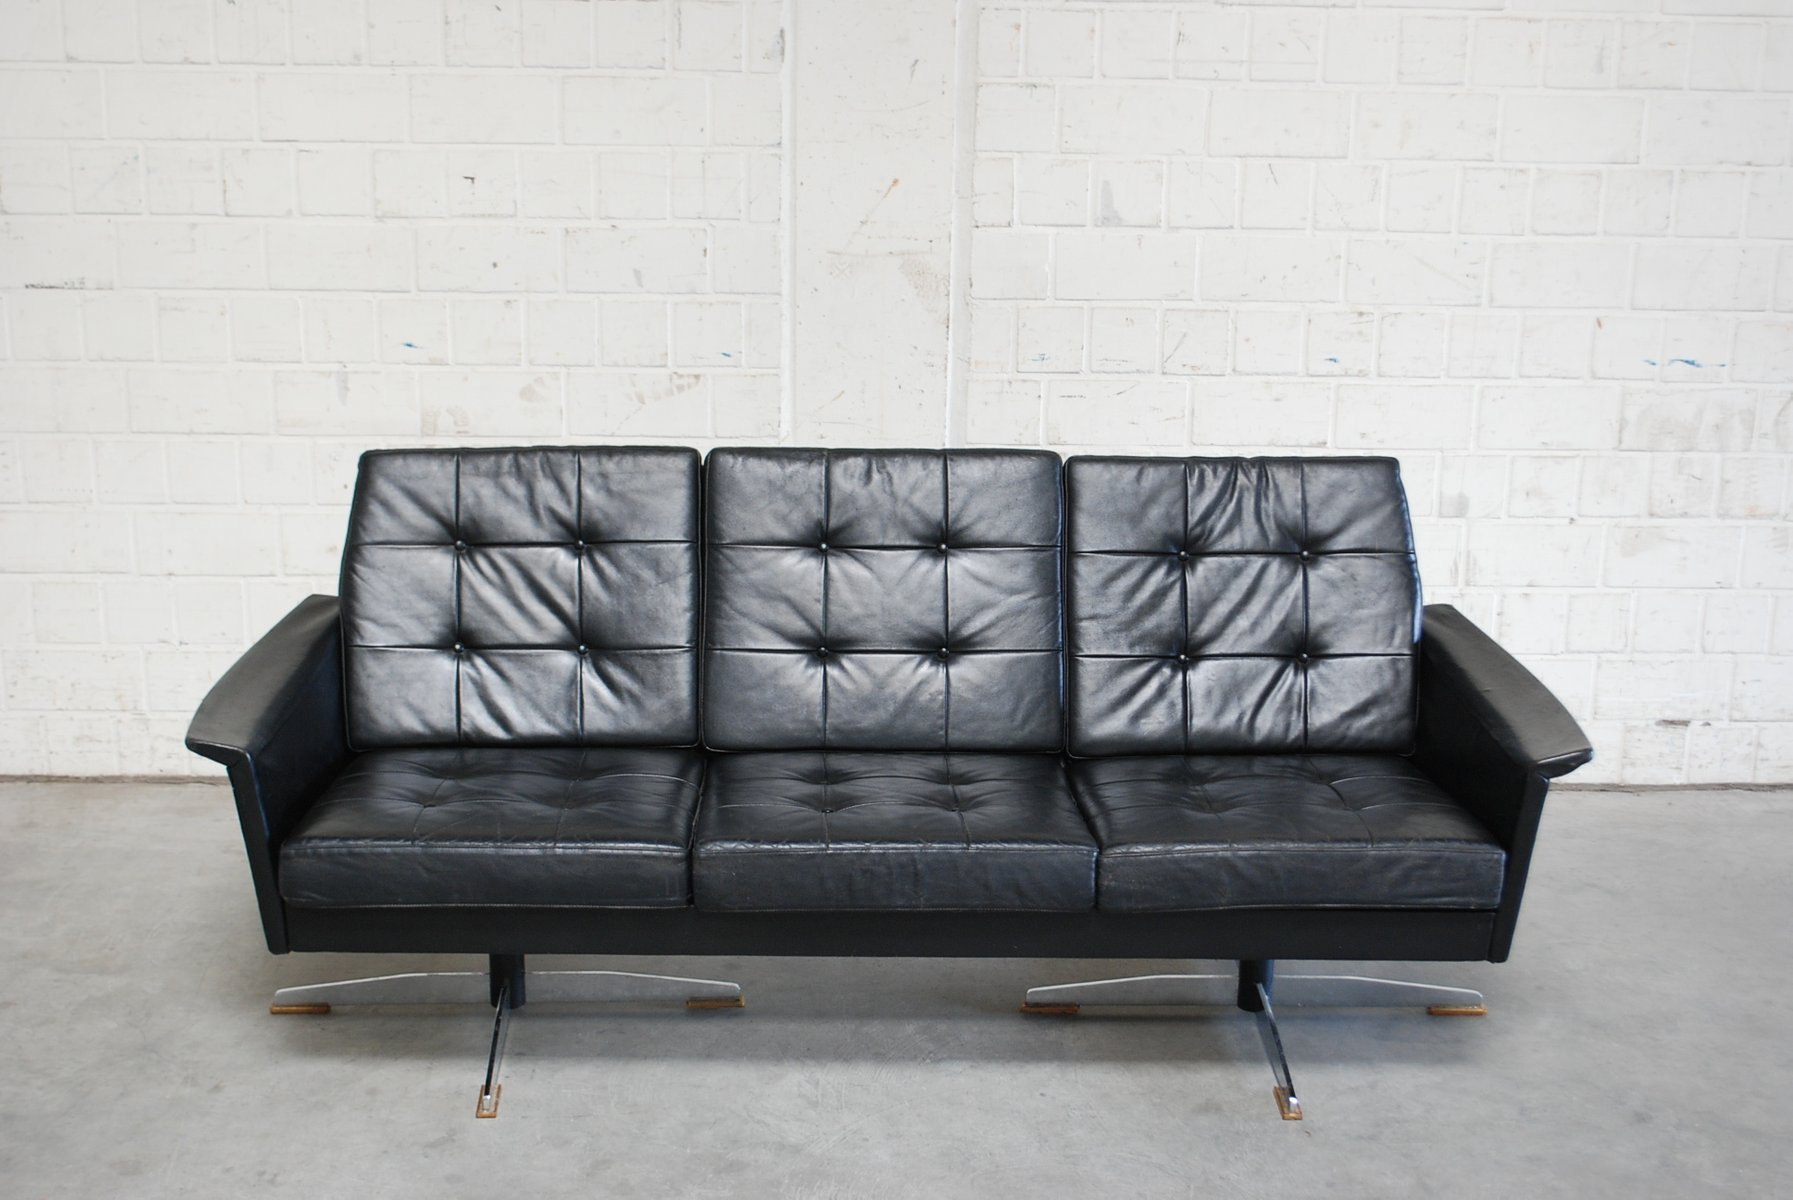 Vintage Black Leather Sofa 1960s For Sale At Pamono